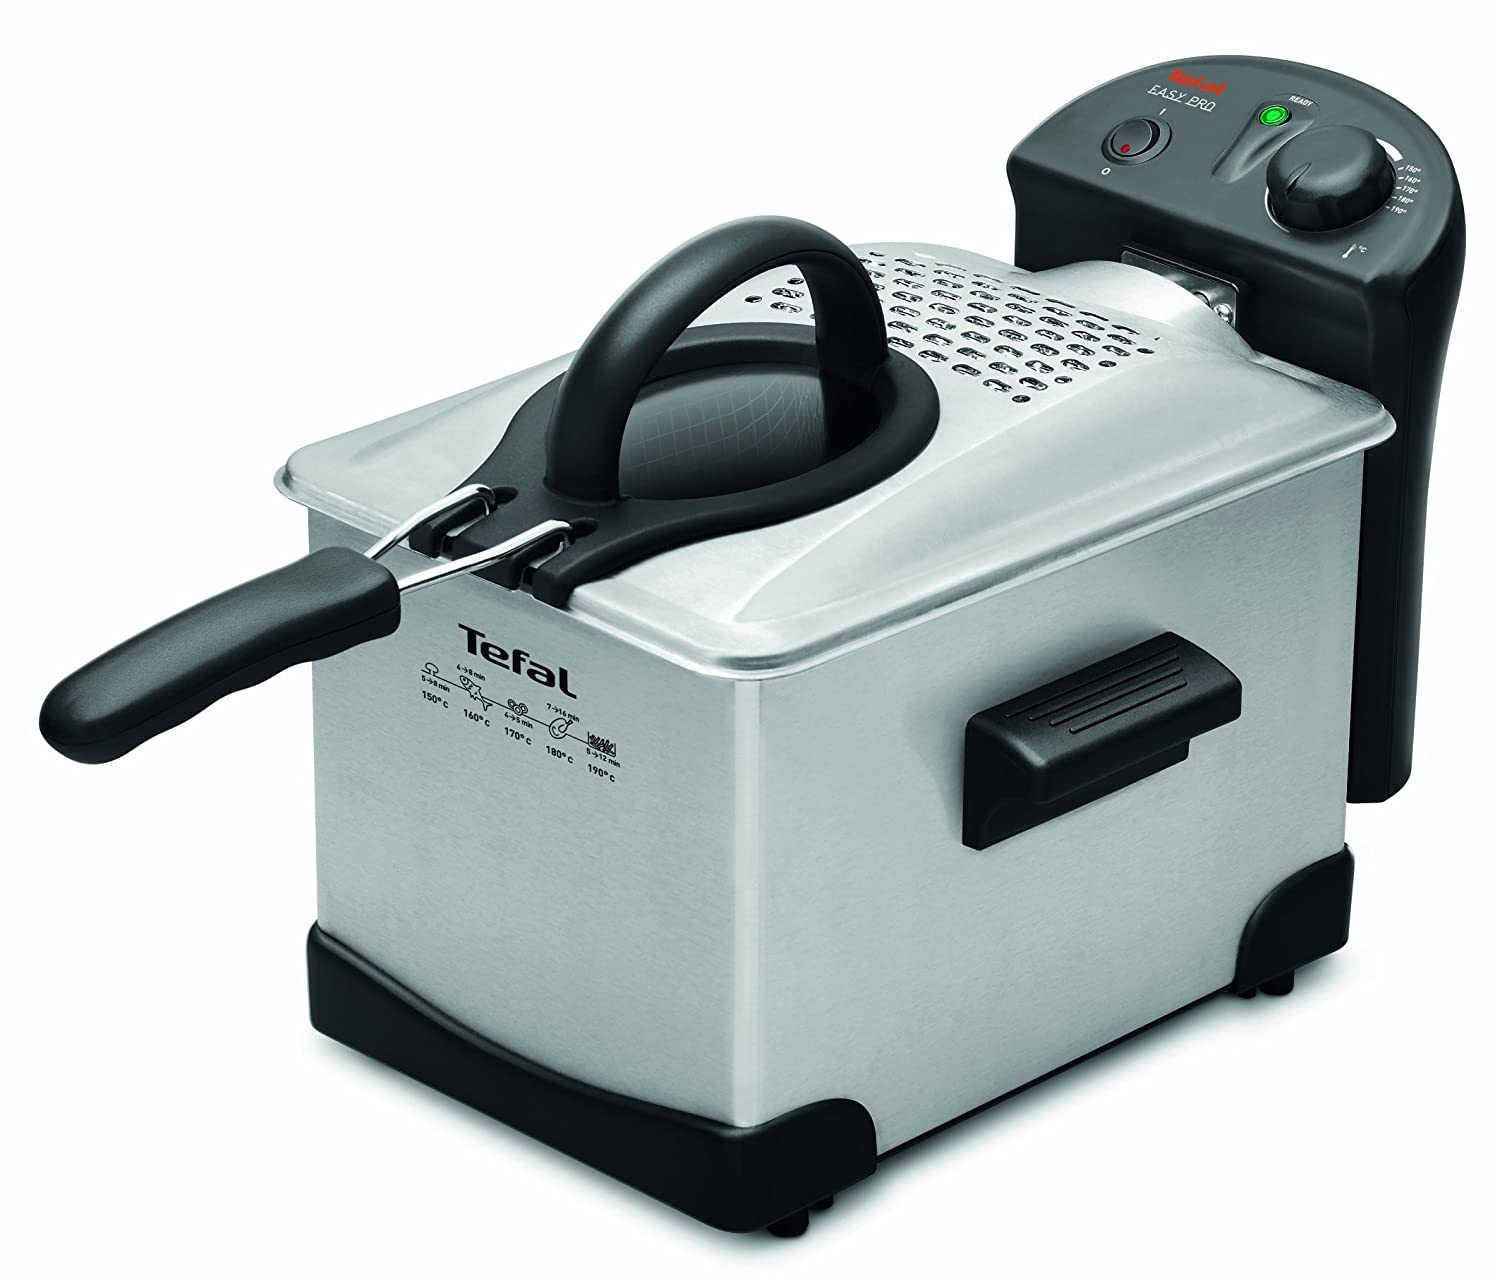 Tefal FR1014 - Fryer, 2100 Watts: Amazon.co.uk: Kitchen & Home